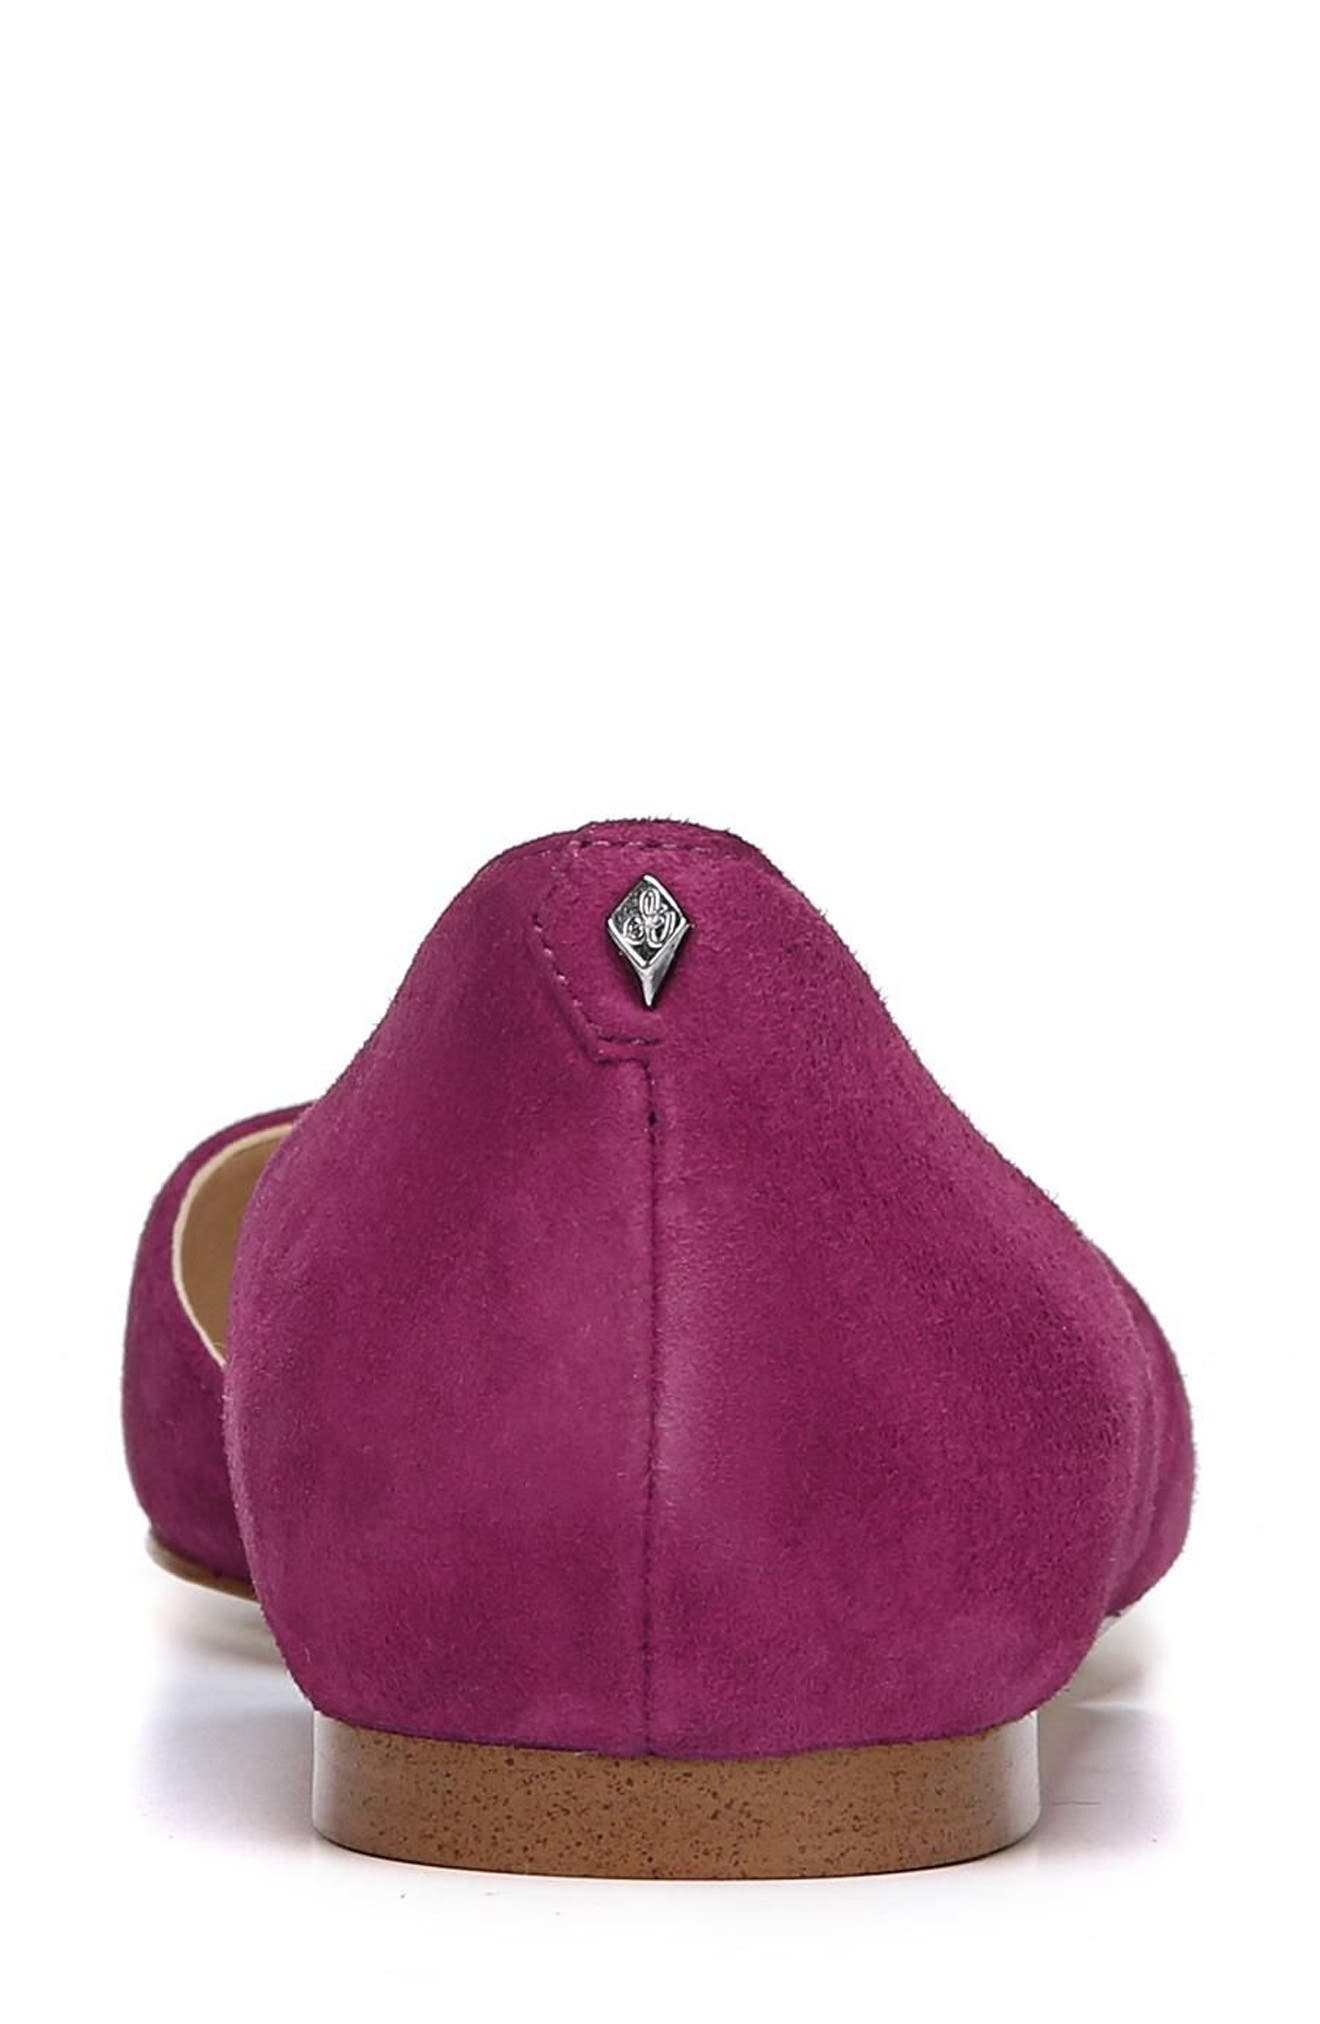 Rodney Pointy Toe d'Orsay Flat,                             Alternate thumbnail 9, color,                             PURPLE PLUM SUEDE